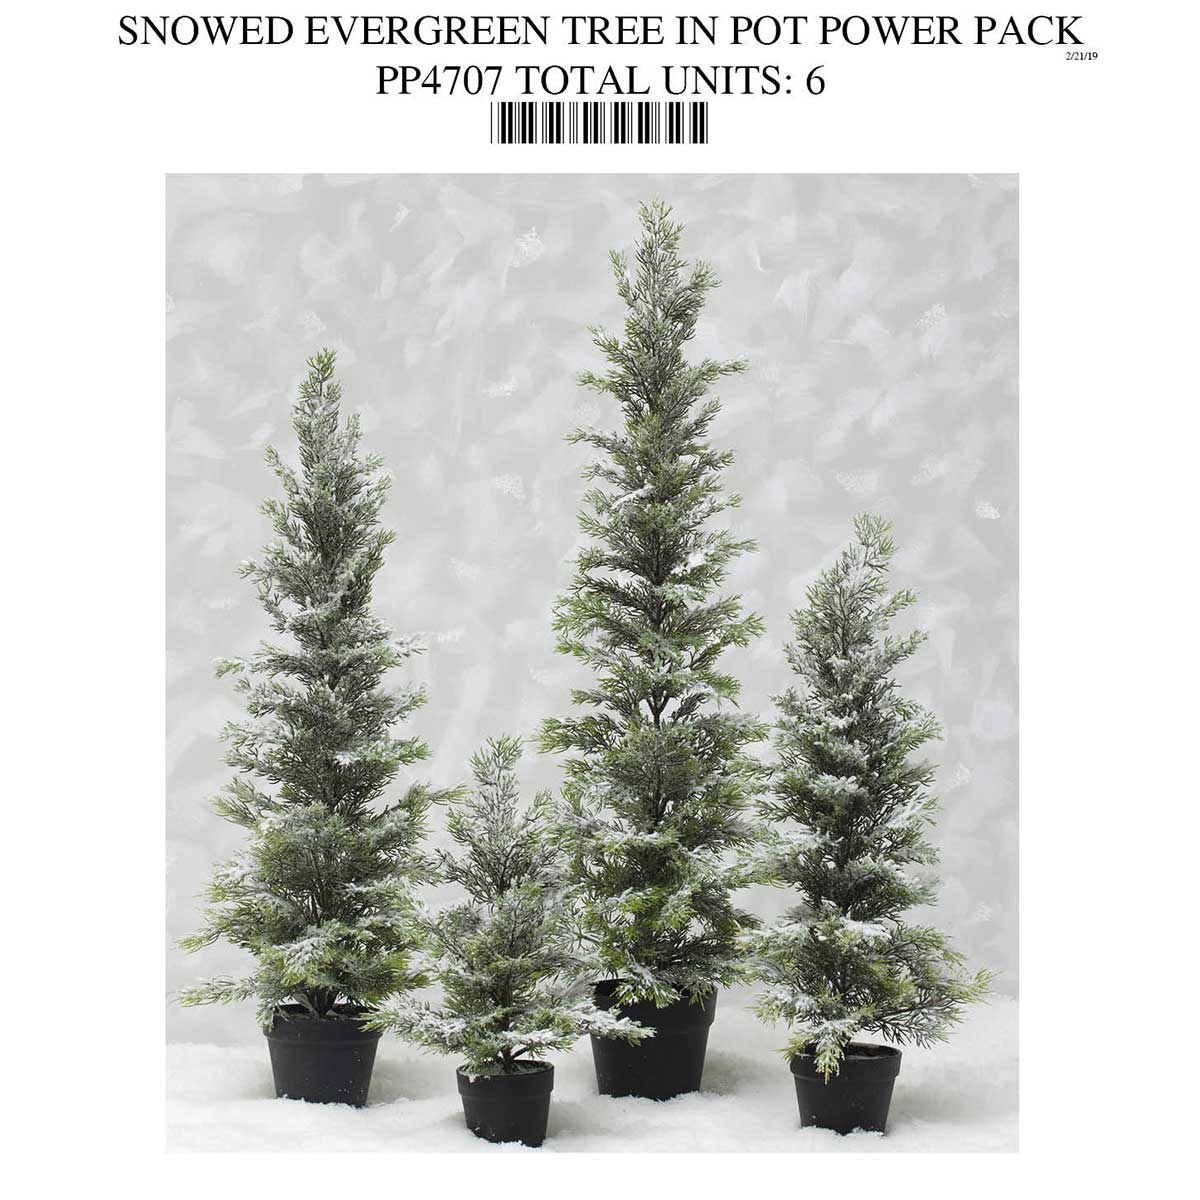 TREE WITH SNOW IN POT POWER PACK 6 UNITS